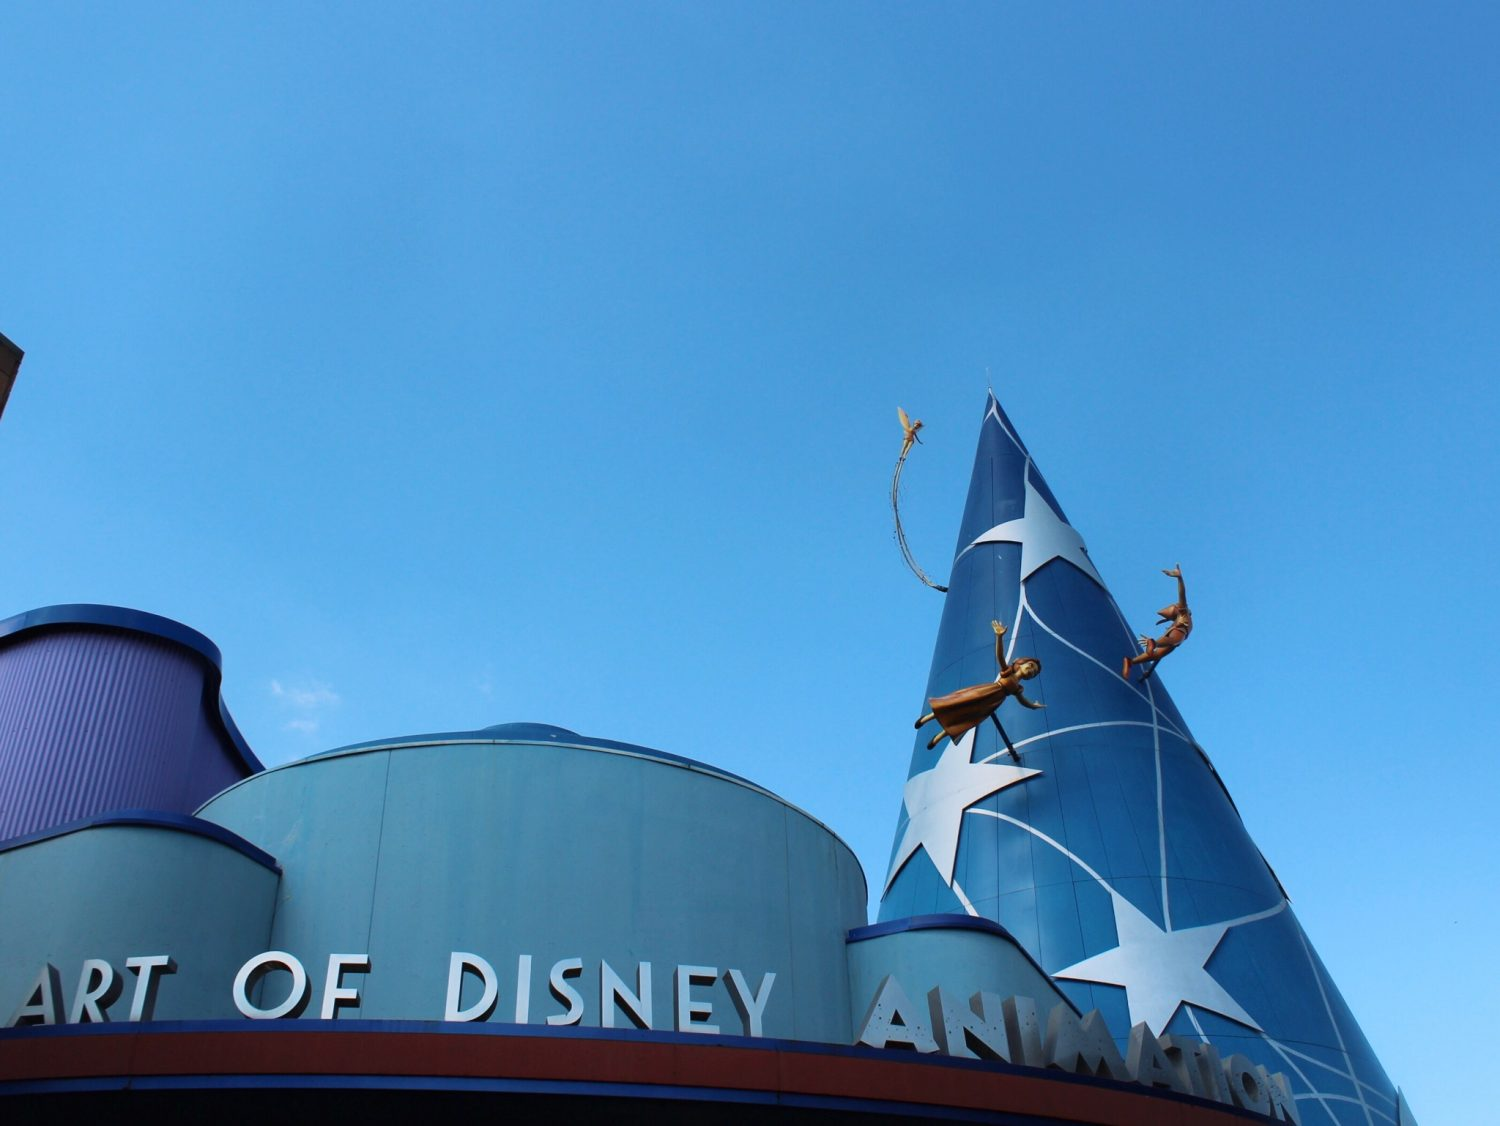 Walt Disney Studios Park Art of Disney Animation